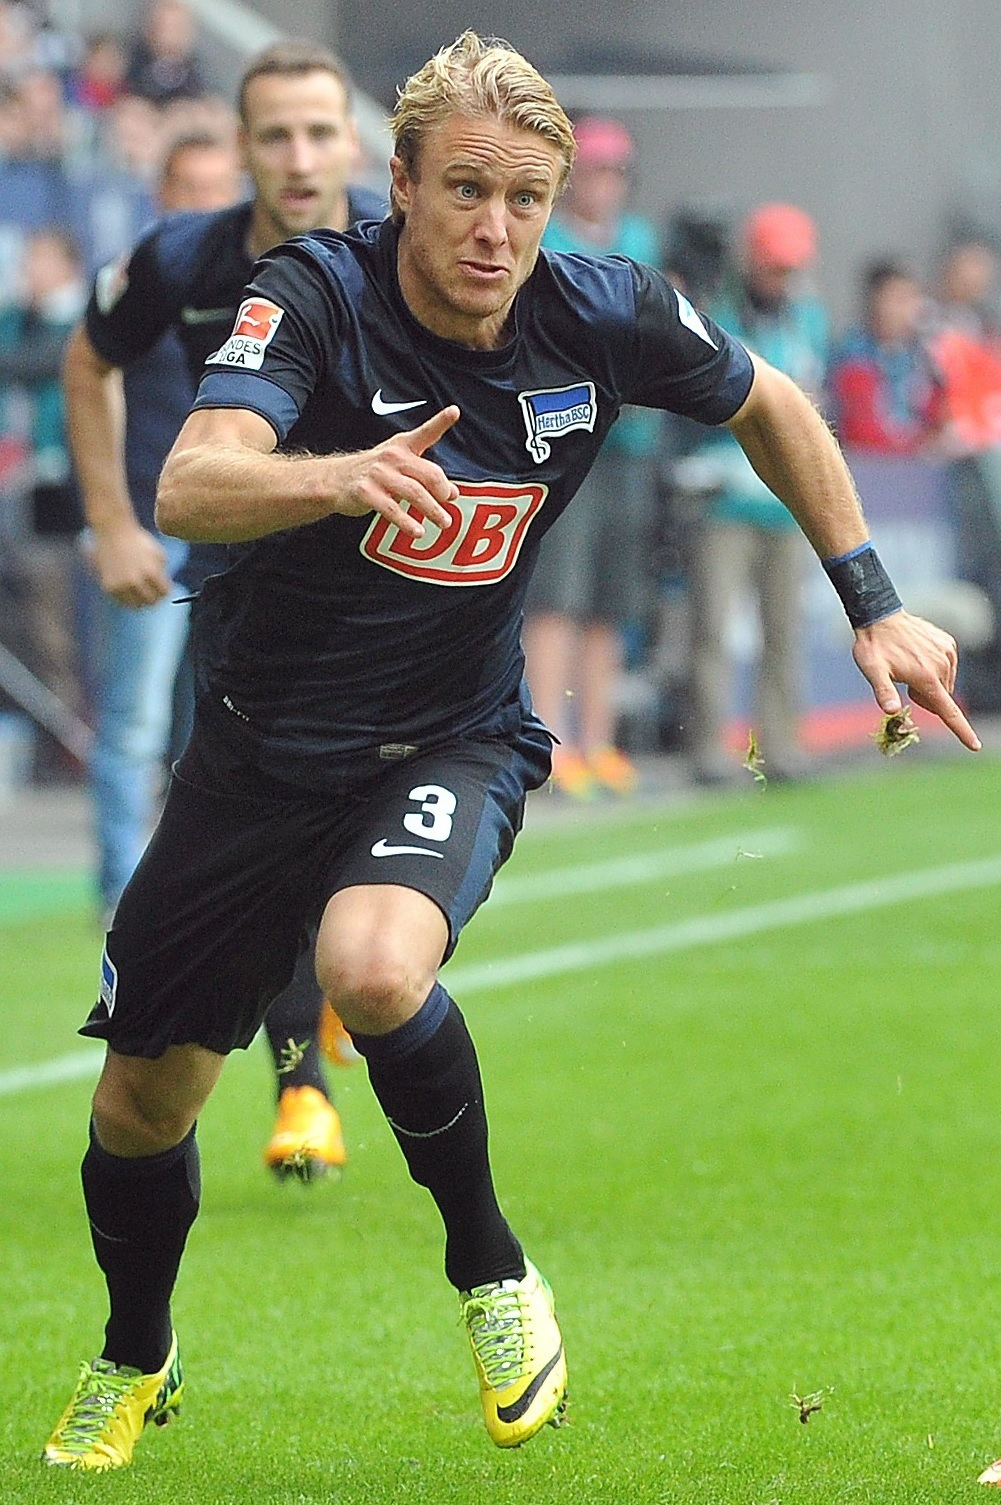 Hertha-Berlin-14-15-NIKE-away-kit.jpg